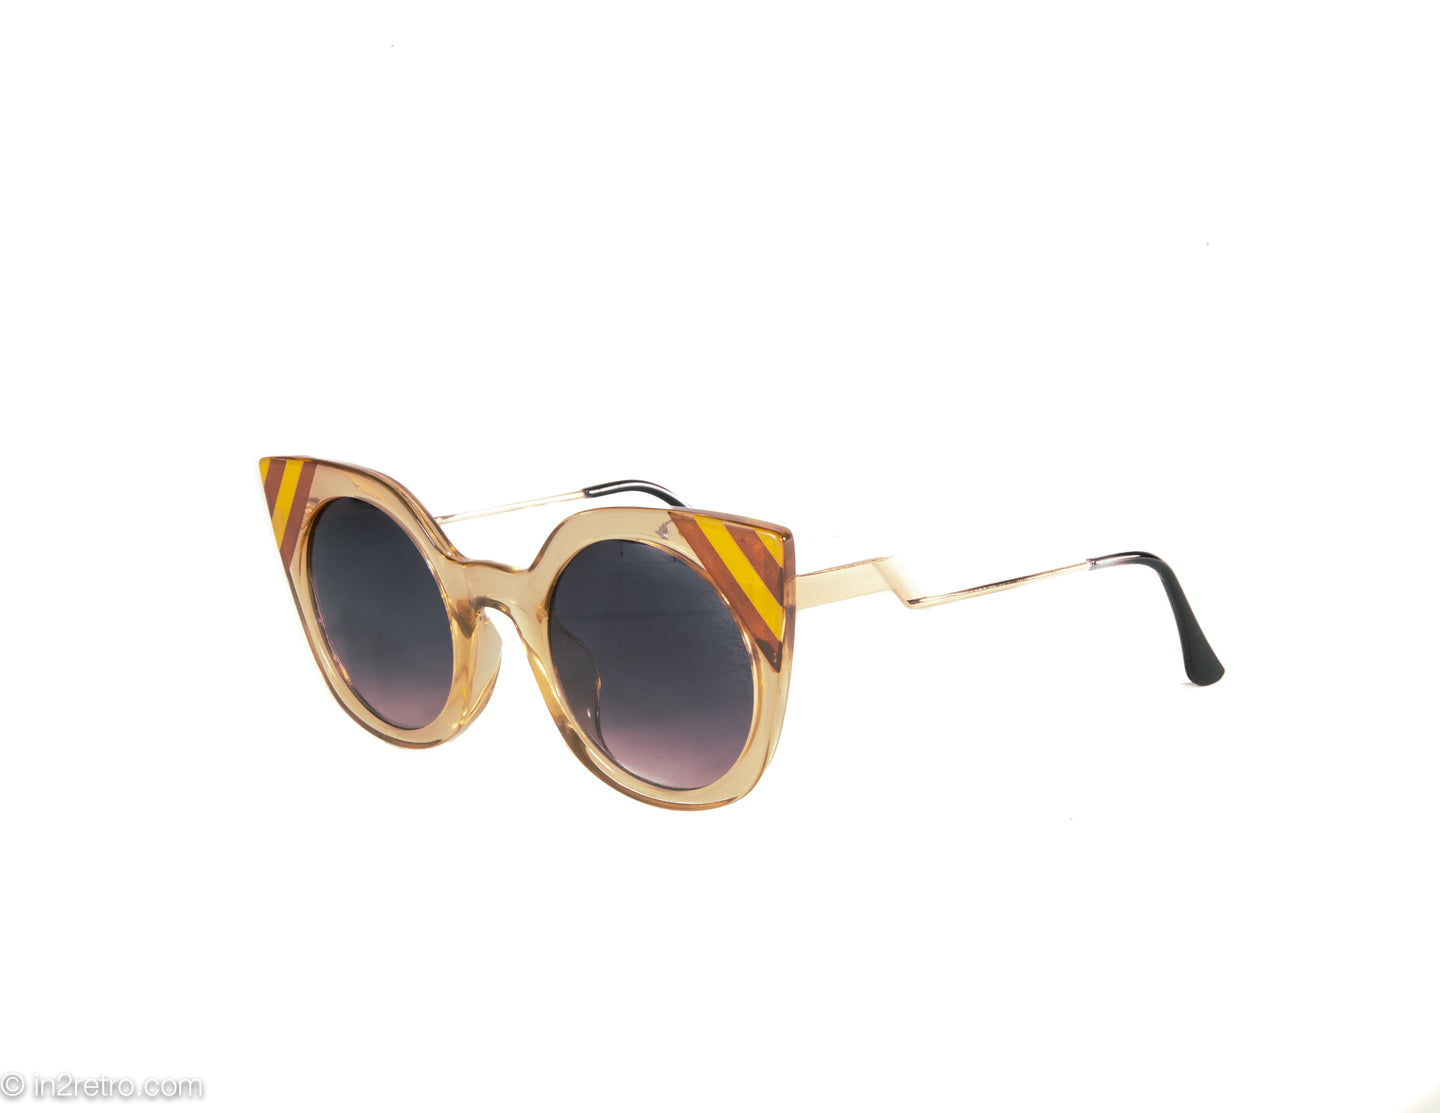 VINTAGE CAT EYE SUNGLASSES WITH TAN STRIPED TEMPLES GOLD METAL ARMS